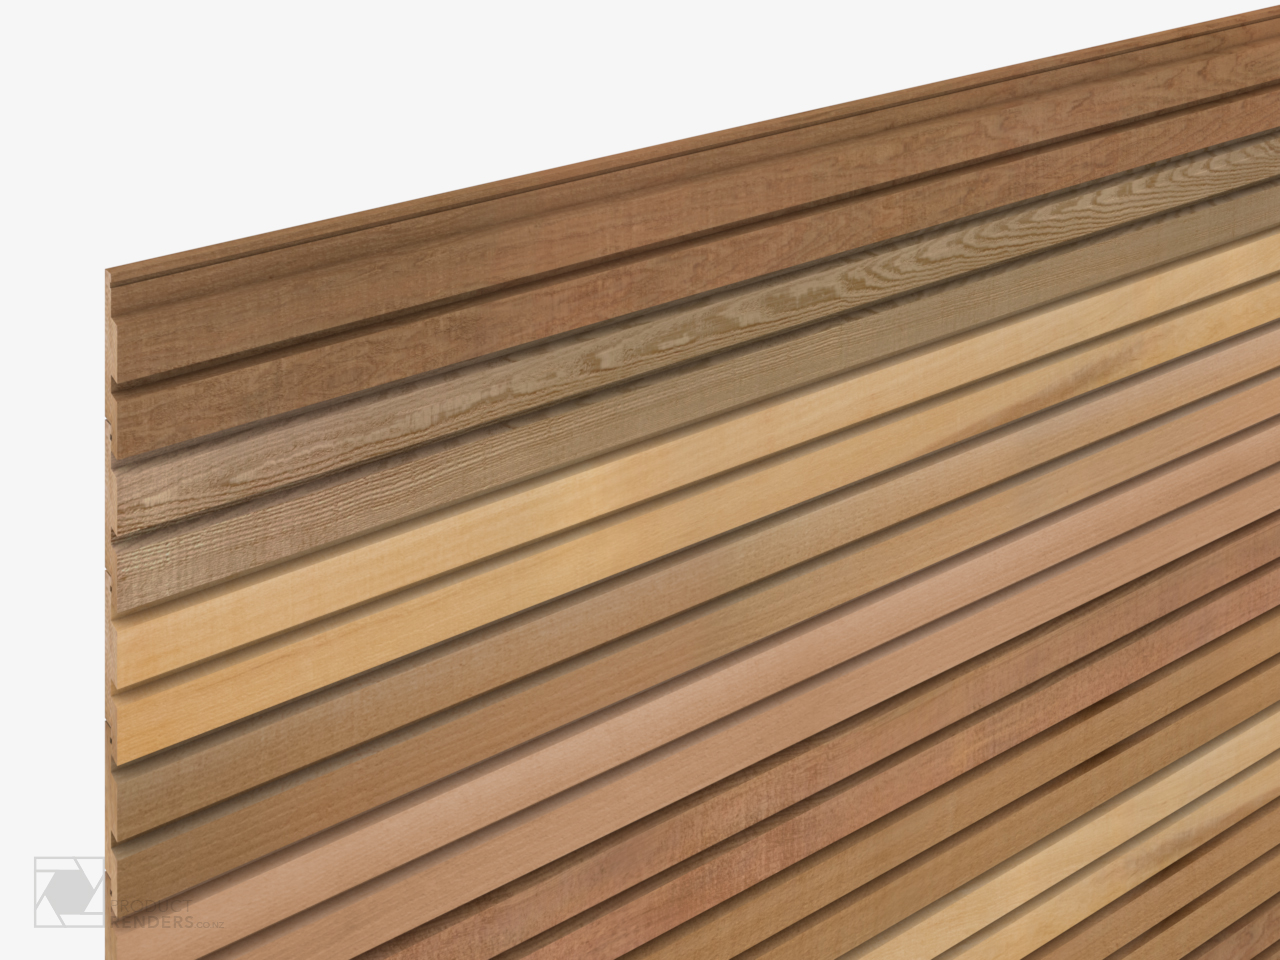 3D render of Hermpac's CP847 timber